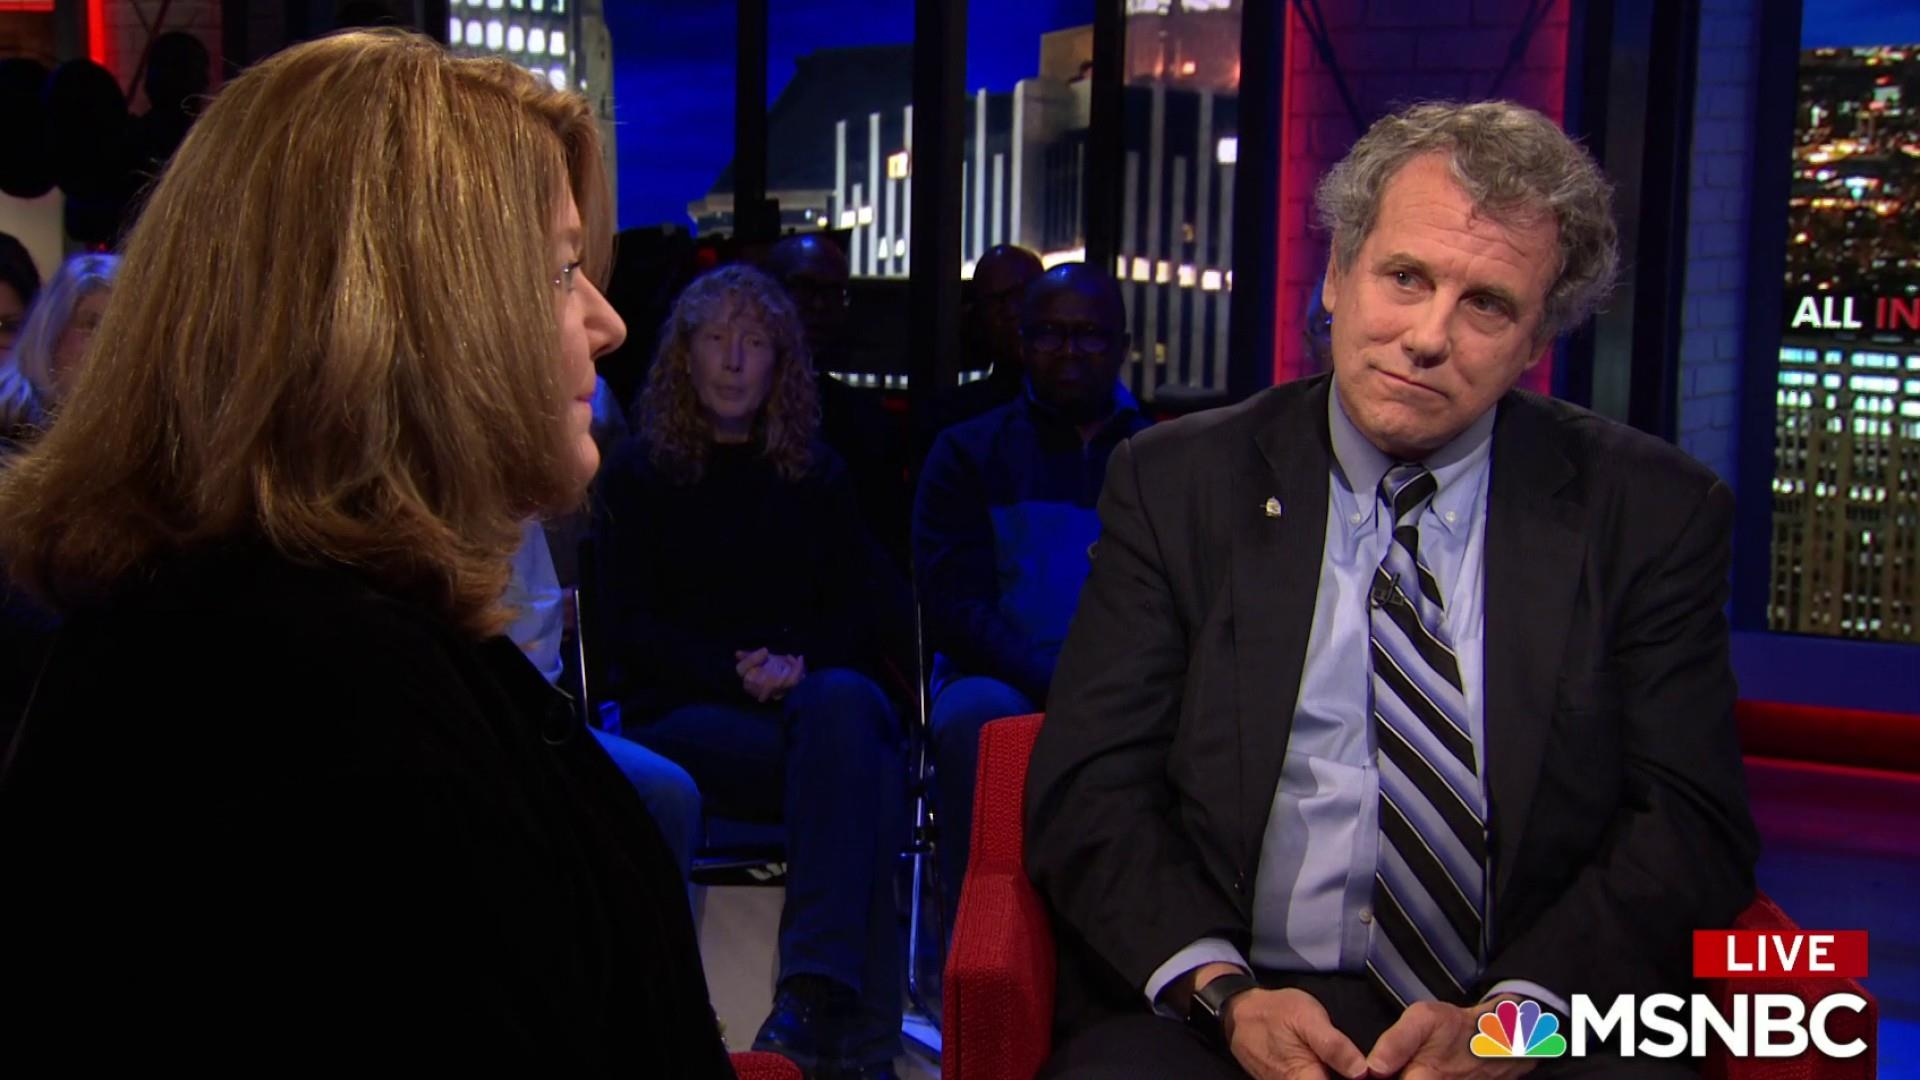 Sen. Sherrod Brown and Connie Schultz on why they decided against a presidential run